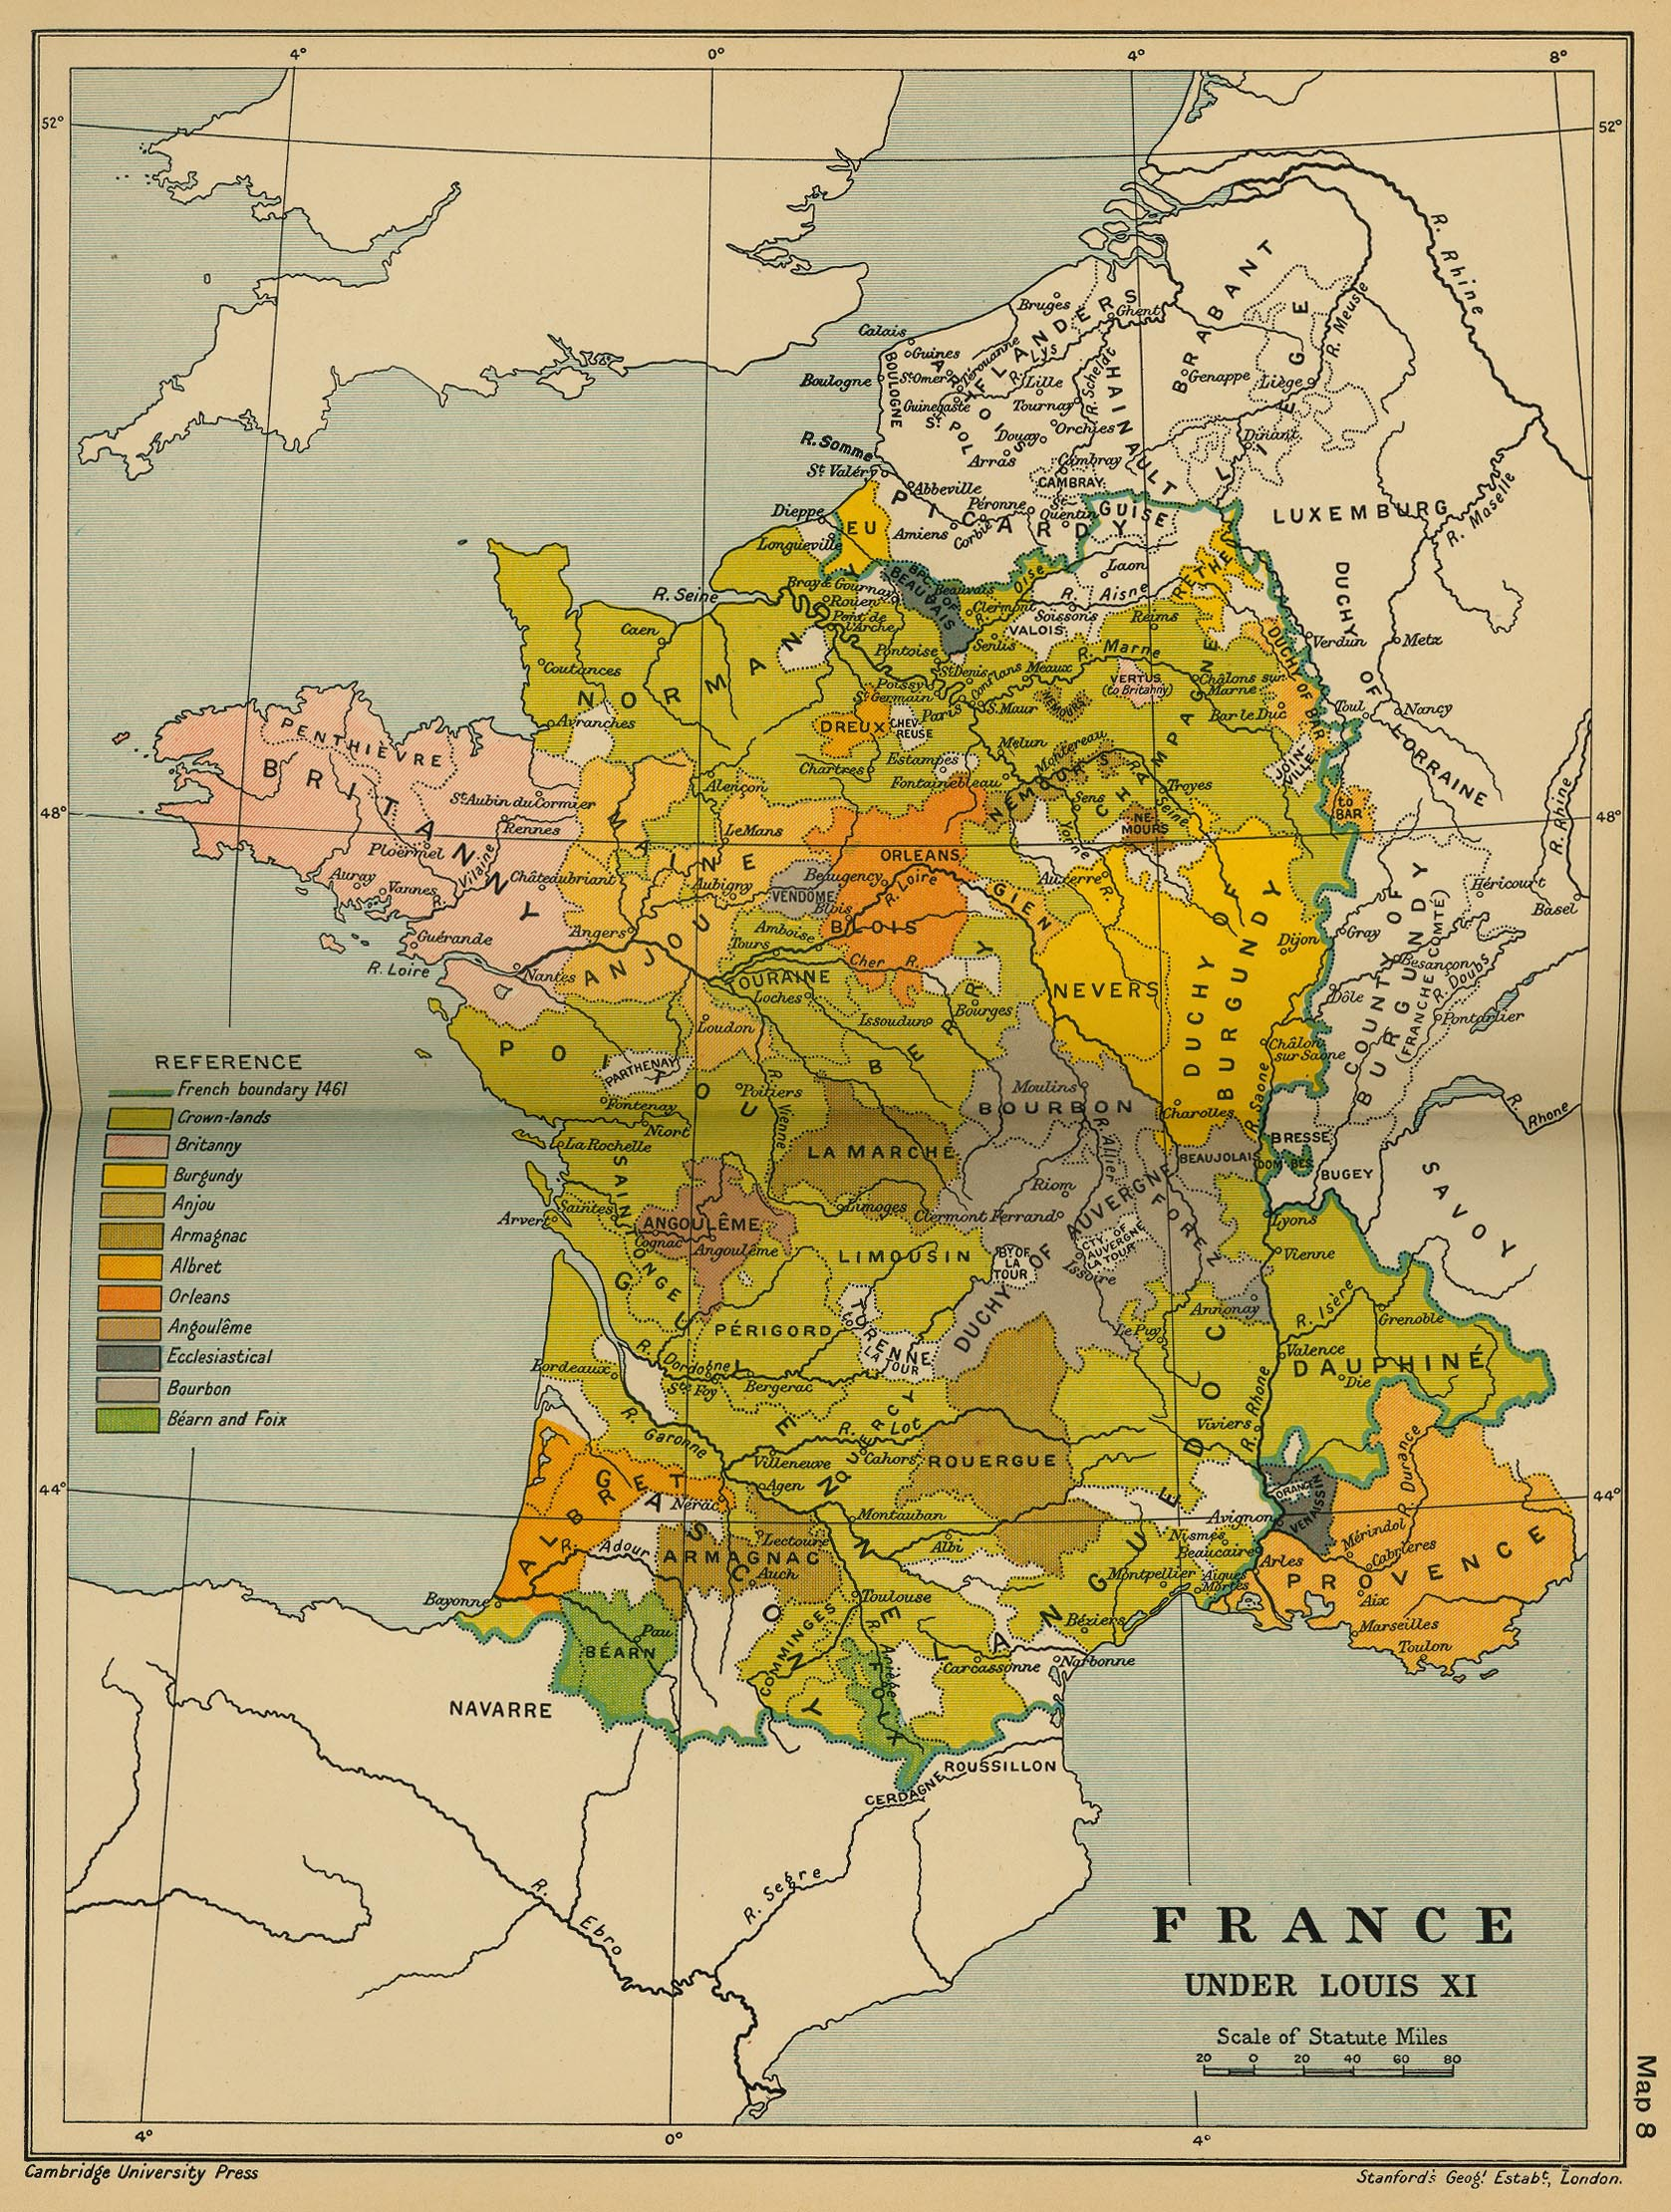 Cambridge modern history atlas 1912 perry castaeda map collection map 7 france under louis xi gumiabroncs Choice Image